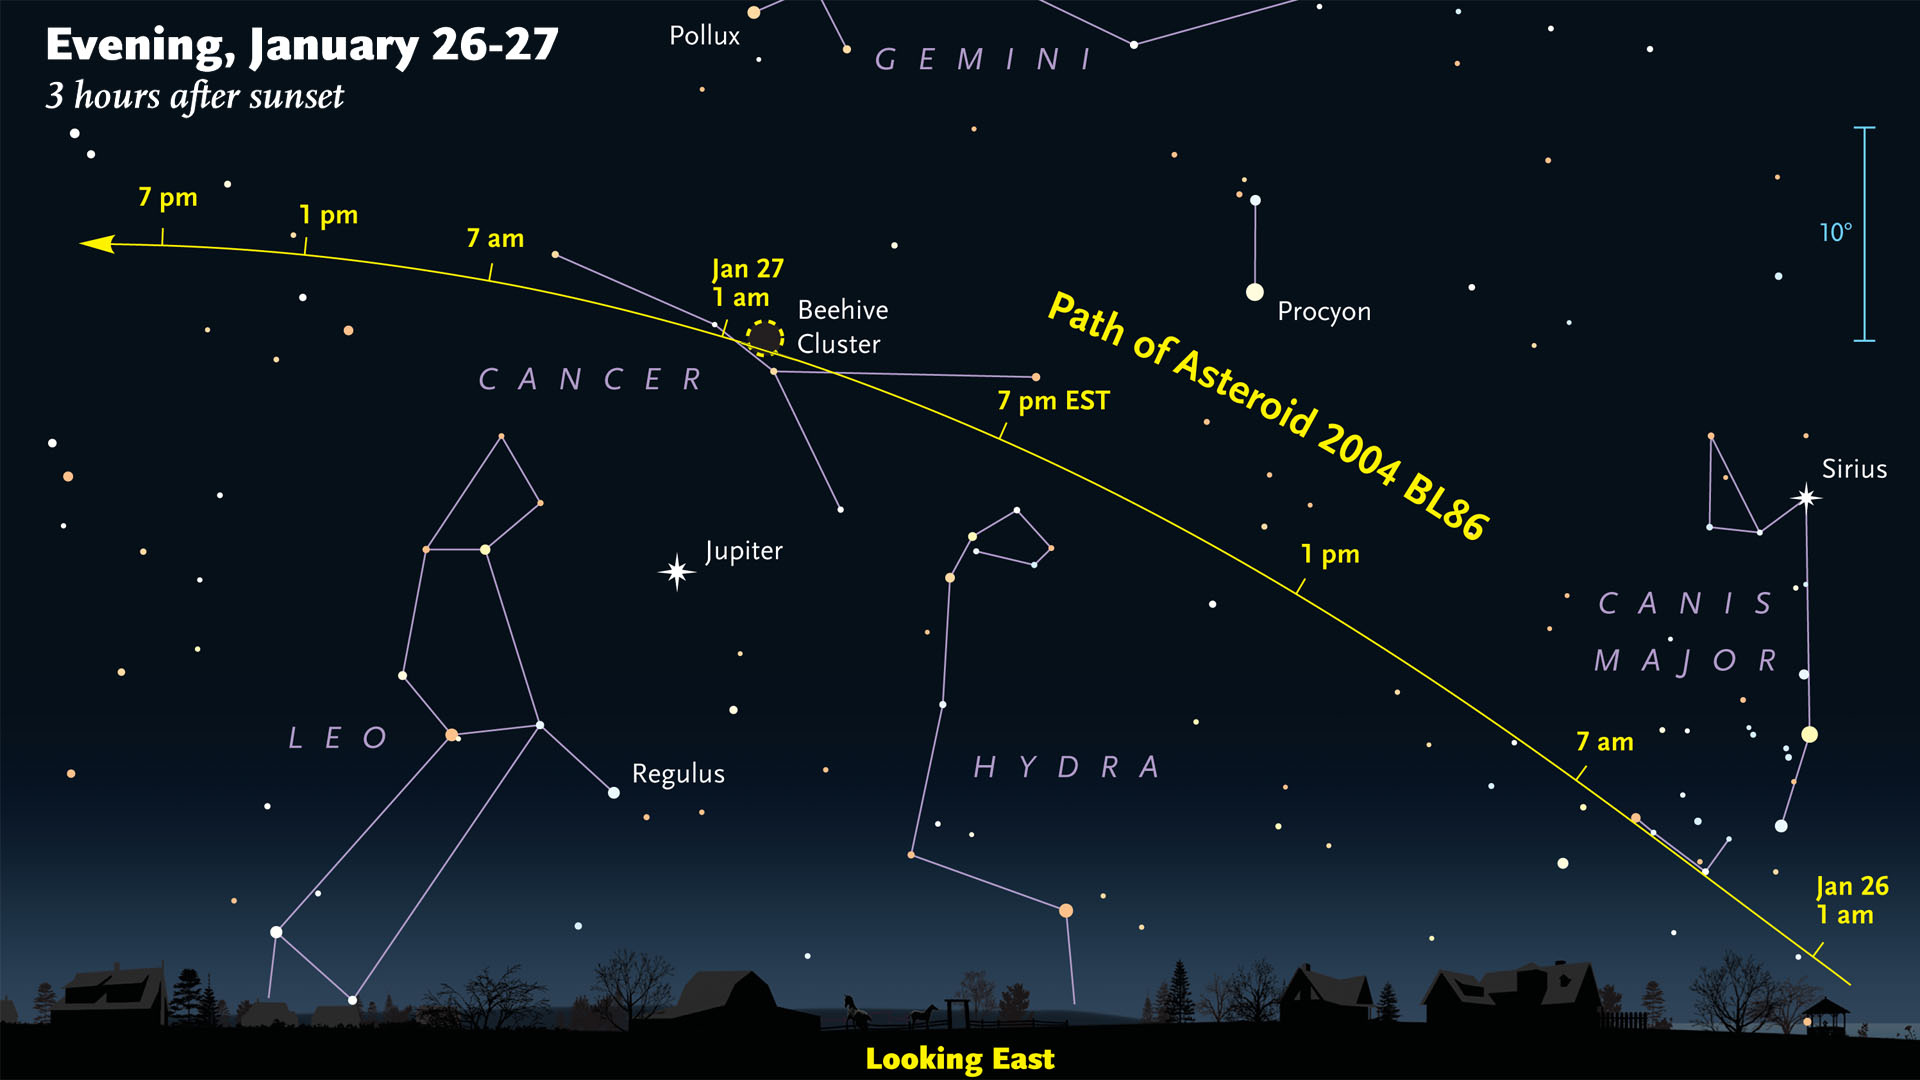 Path of asteroid 2004 BL86 on January 26-27